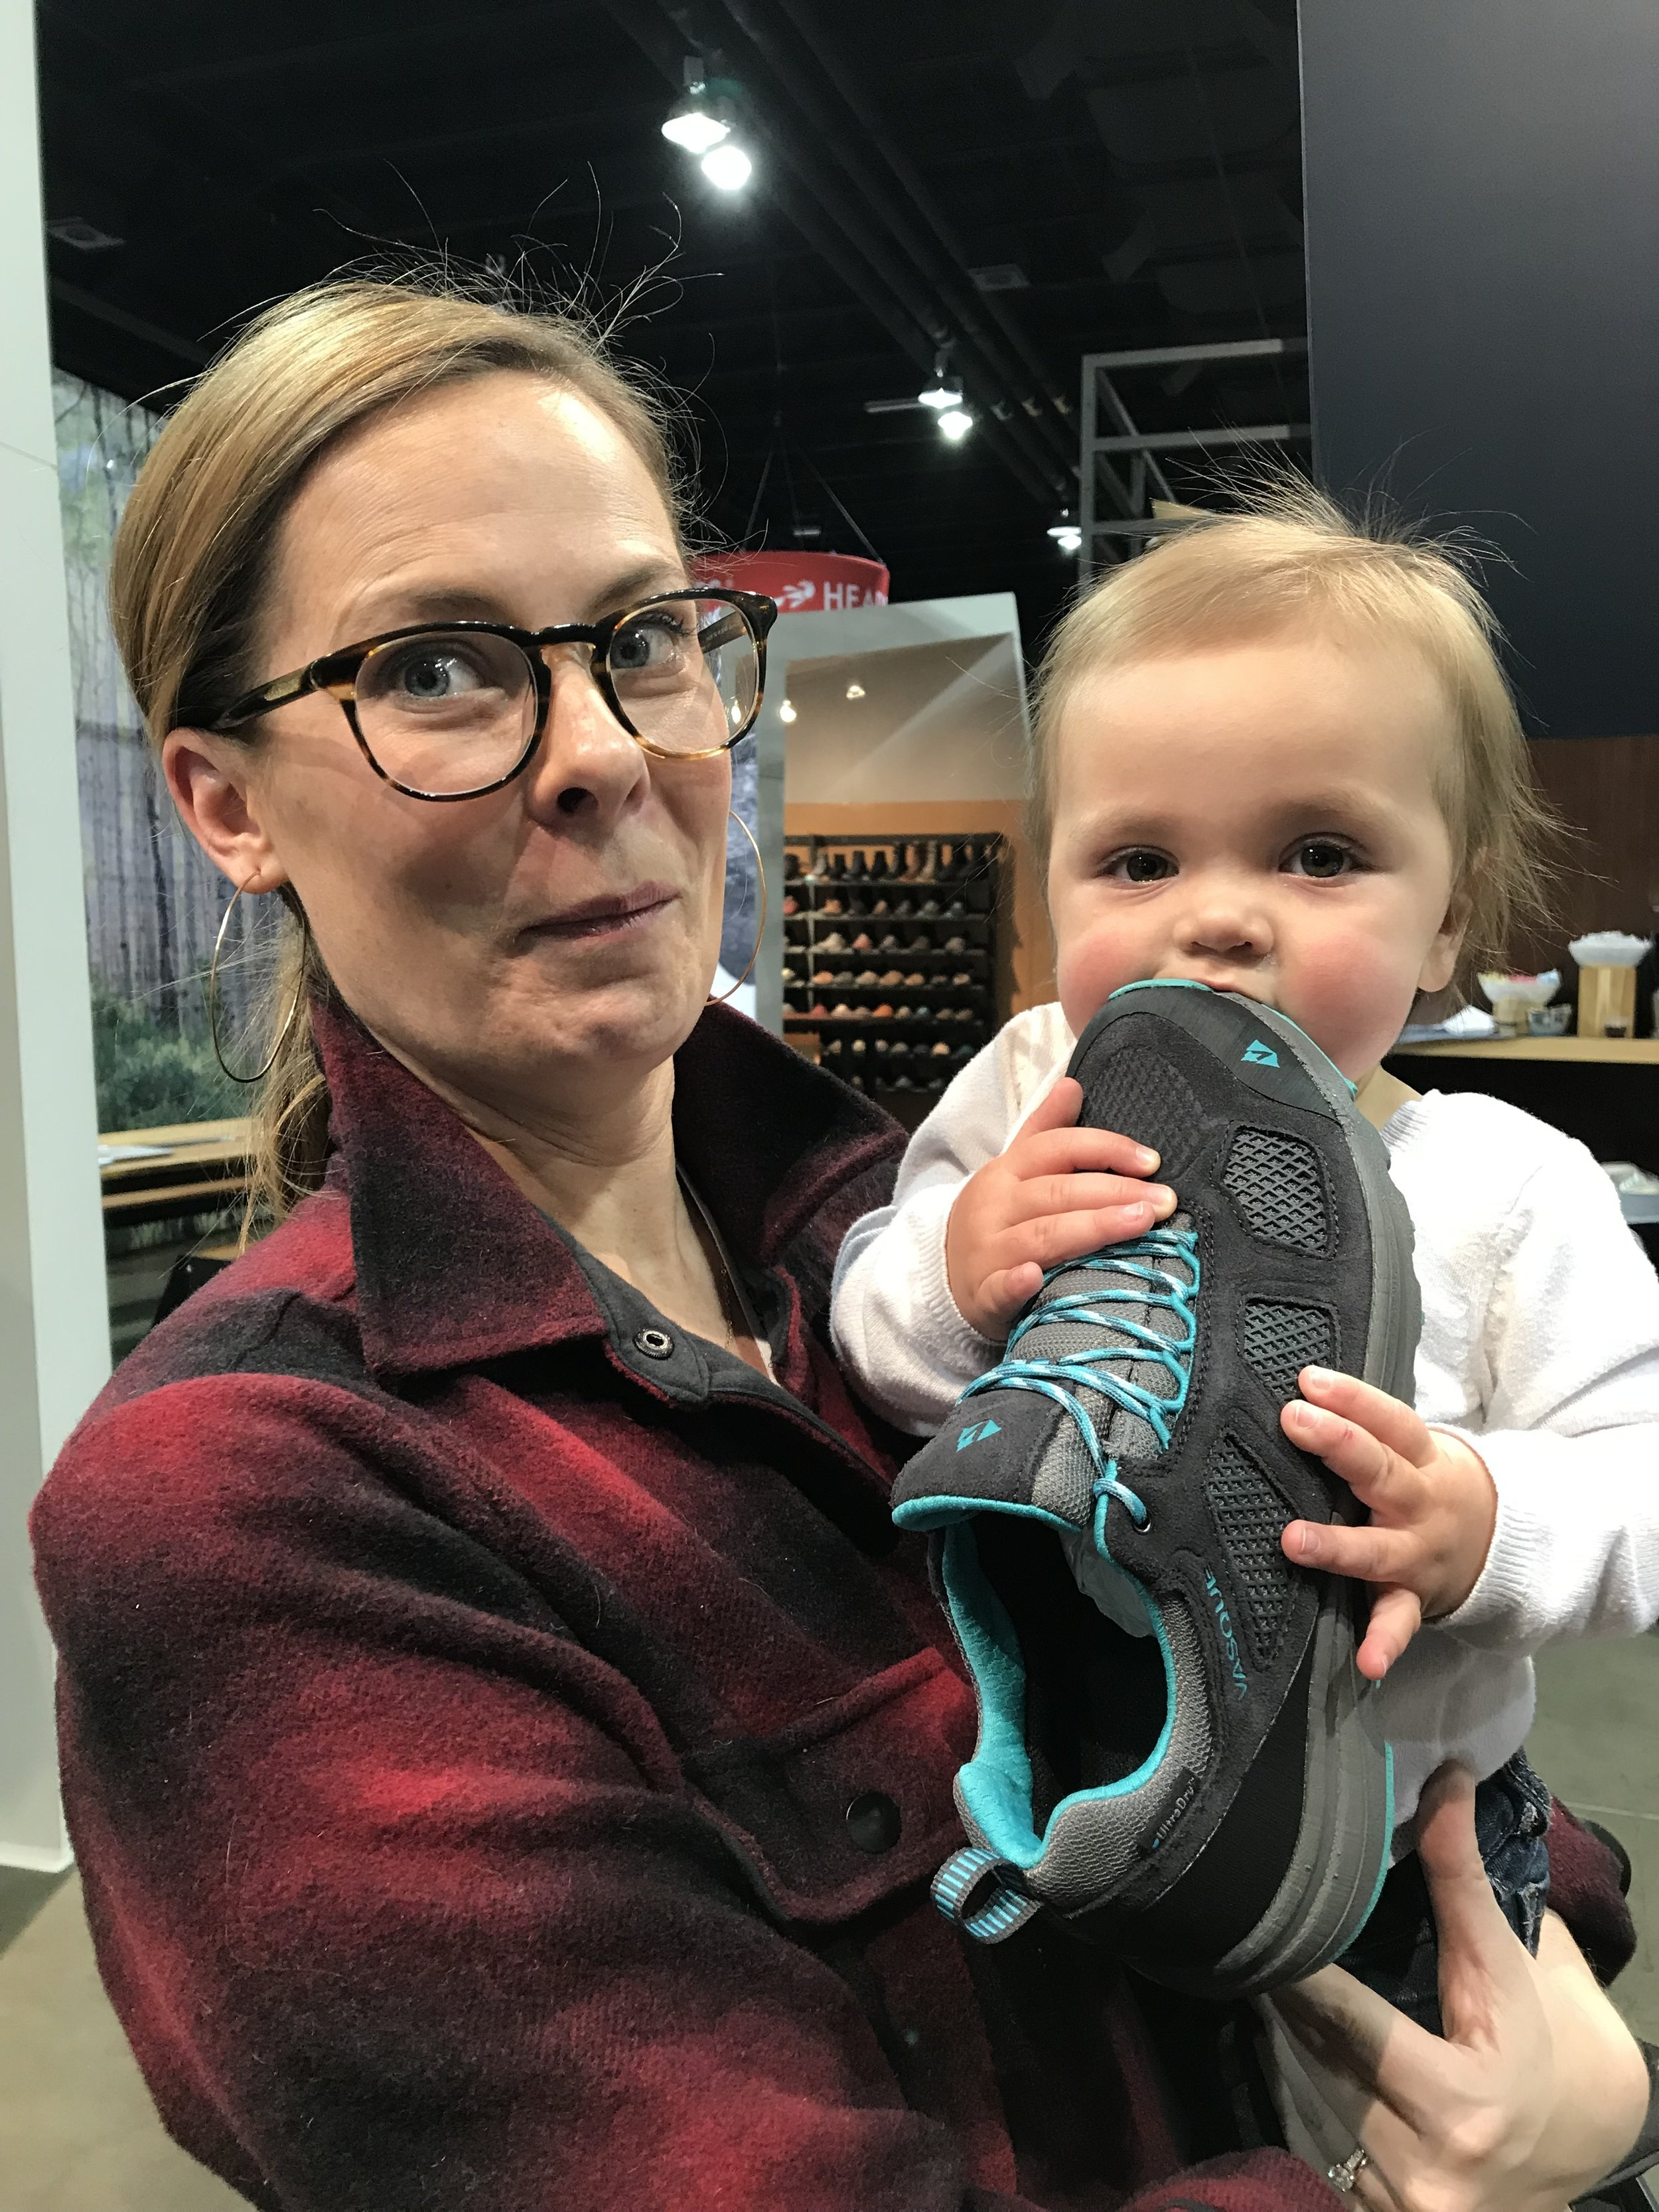 They're not typically meant for eating, but we won't tell her any different. JAM Team member Amy May with  Heather Balogh's  daughter, Lilliana.